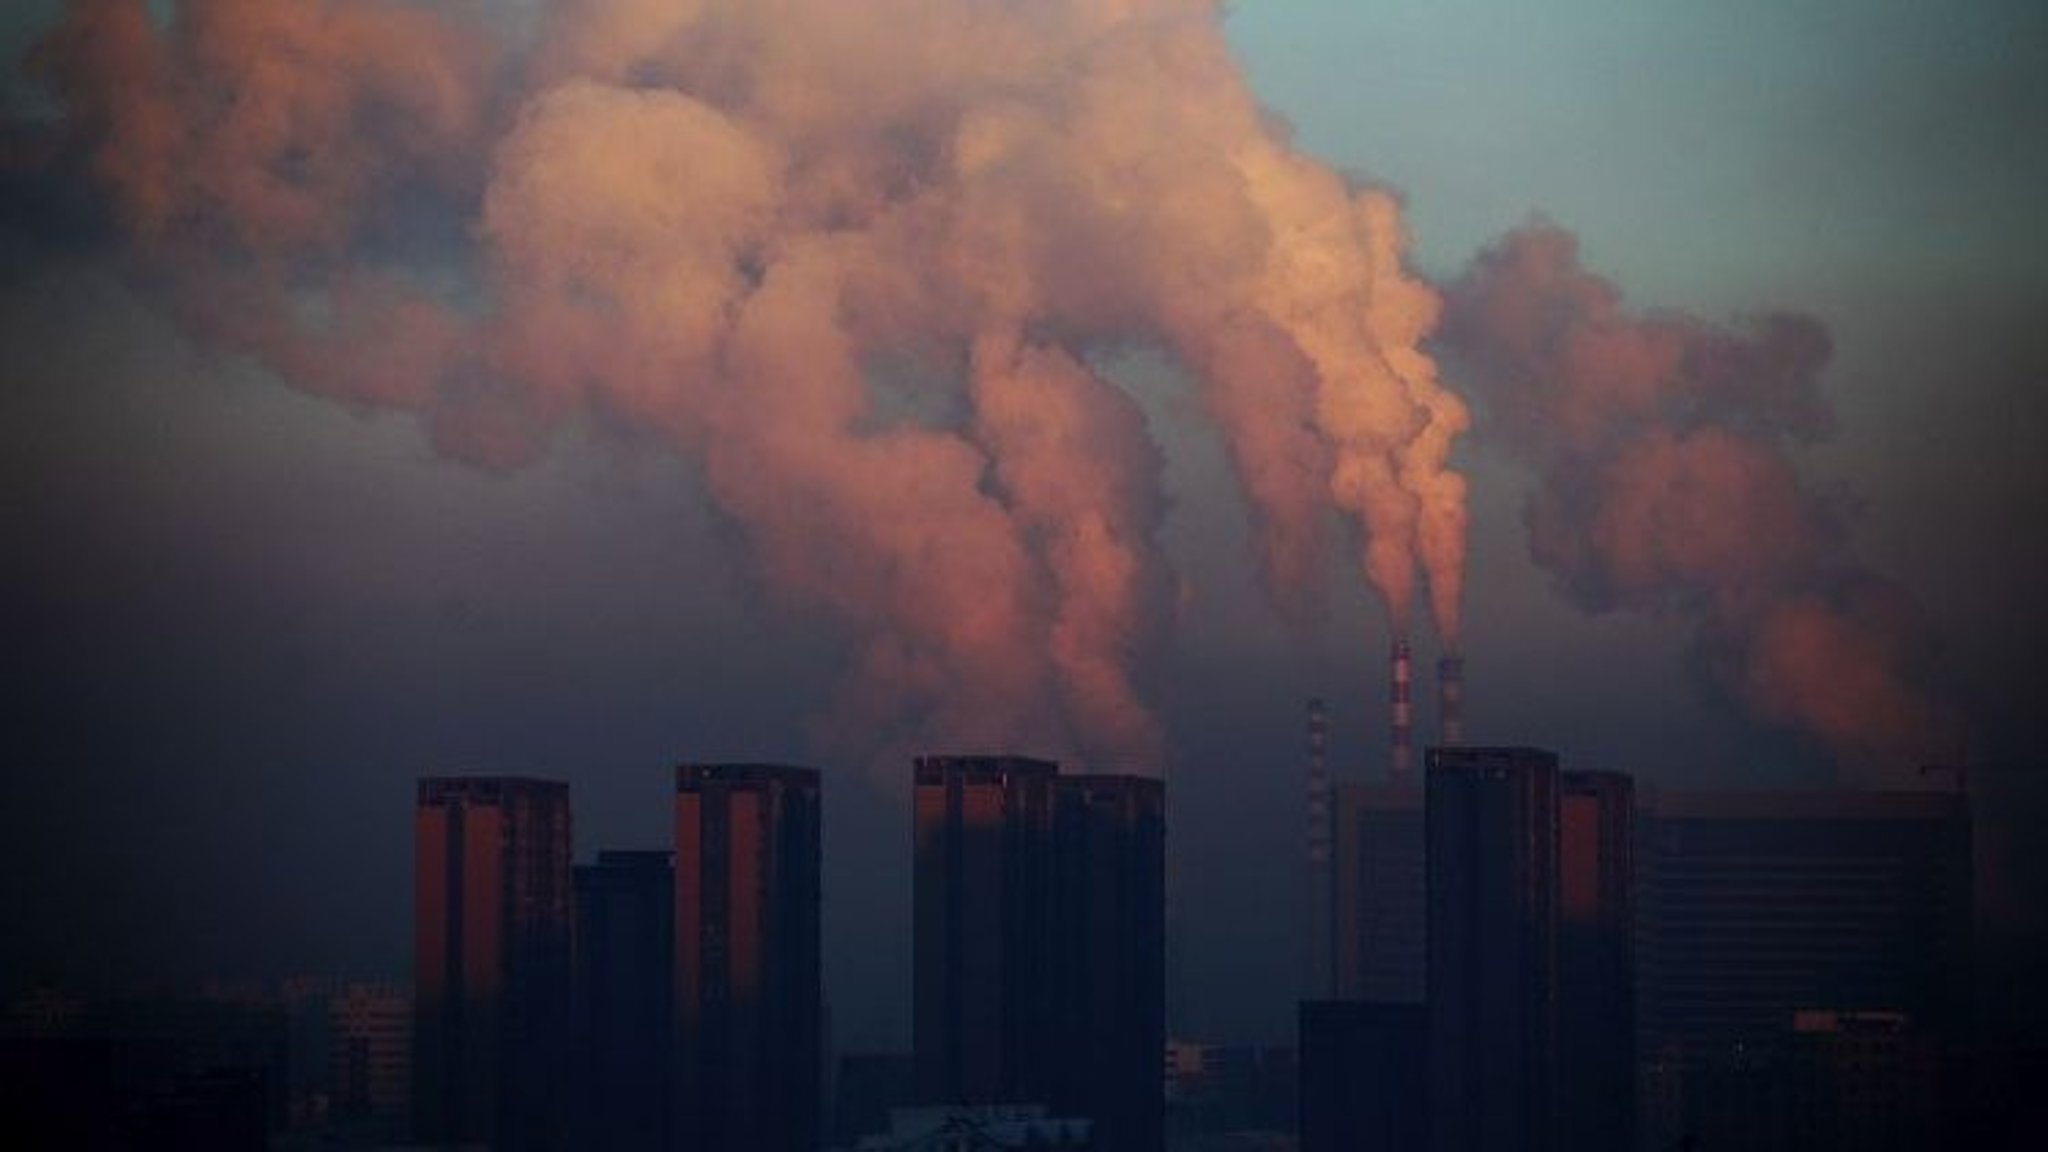 pollution is a consistent demolition of the earth essay Pollution, causes and effects: pollution occurs when pollutants contaminate the natural surroundings which brings about changes that affect our normal lifestyles adversely pollutants are the key elements or components of pollution which are generally waste materials of different forms.